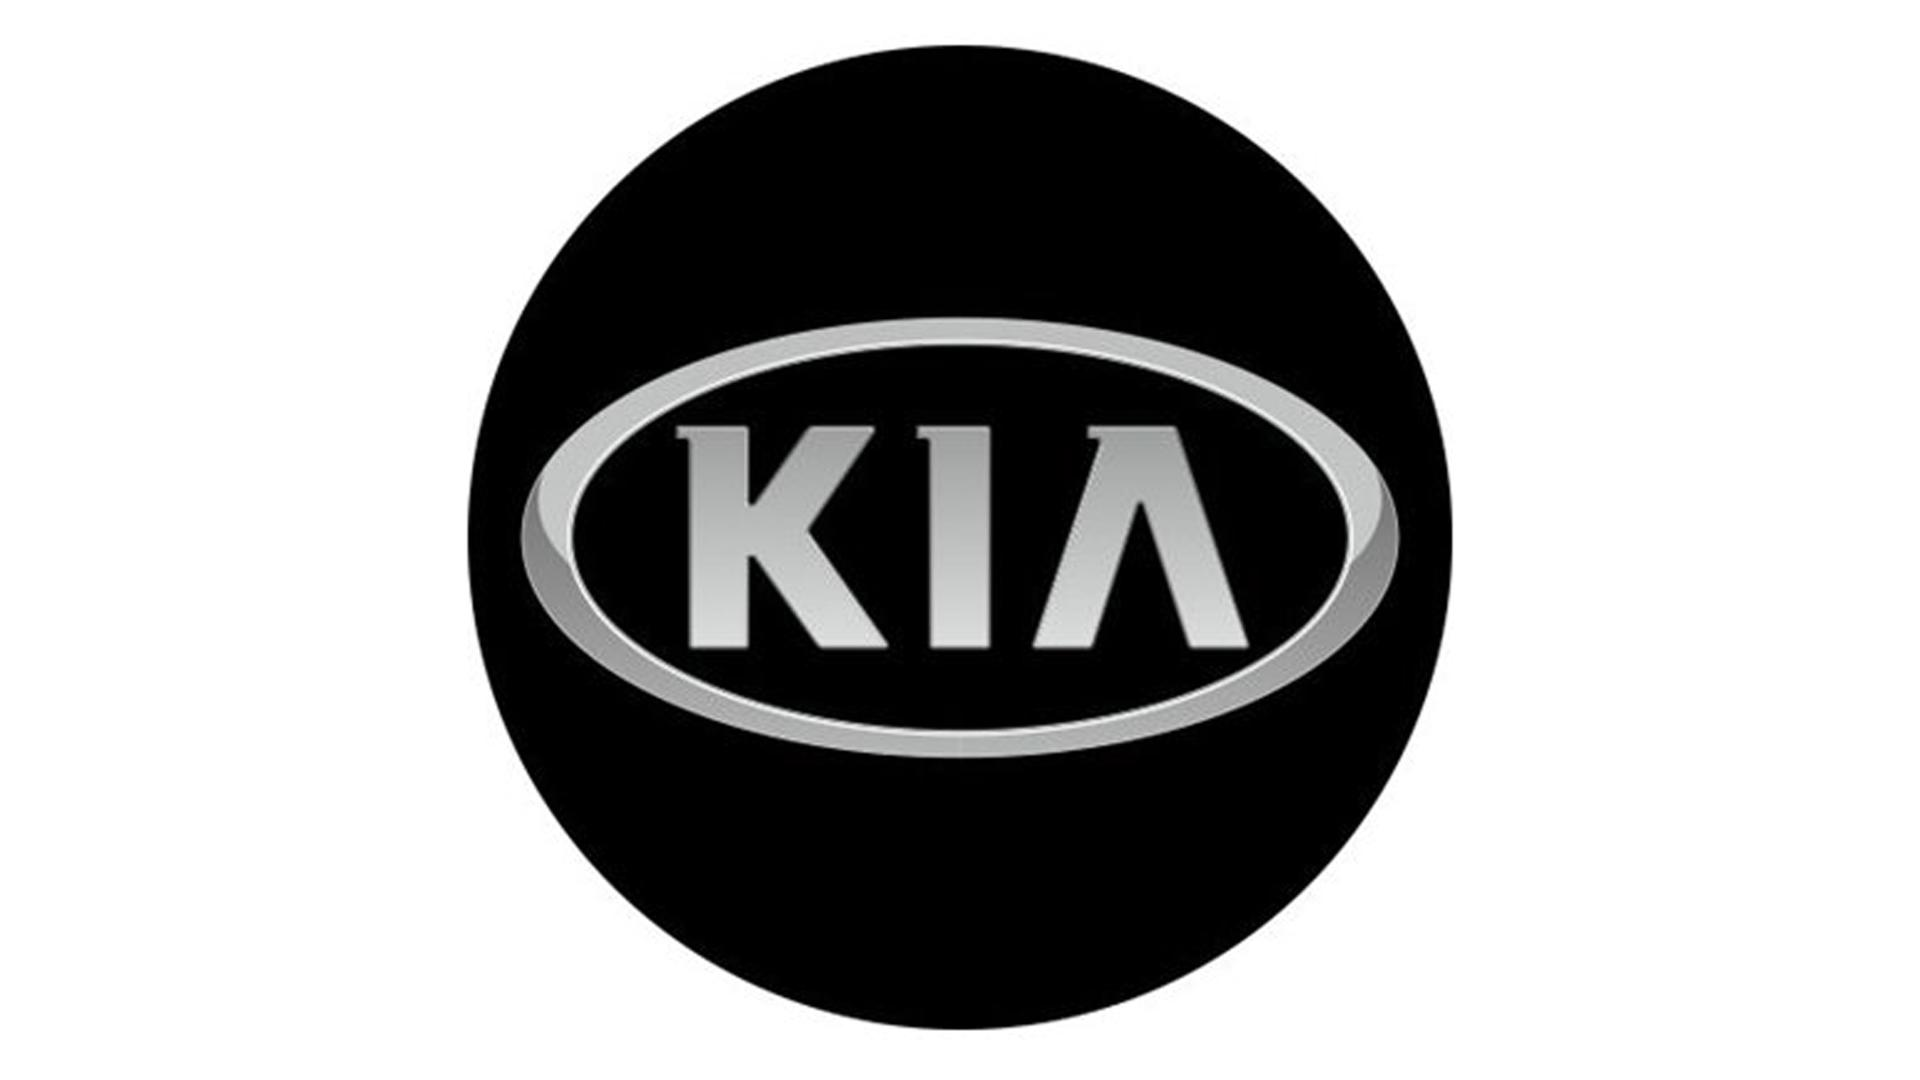 4CARS 3D CAR LOGO KIA